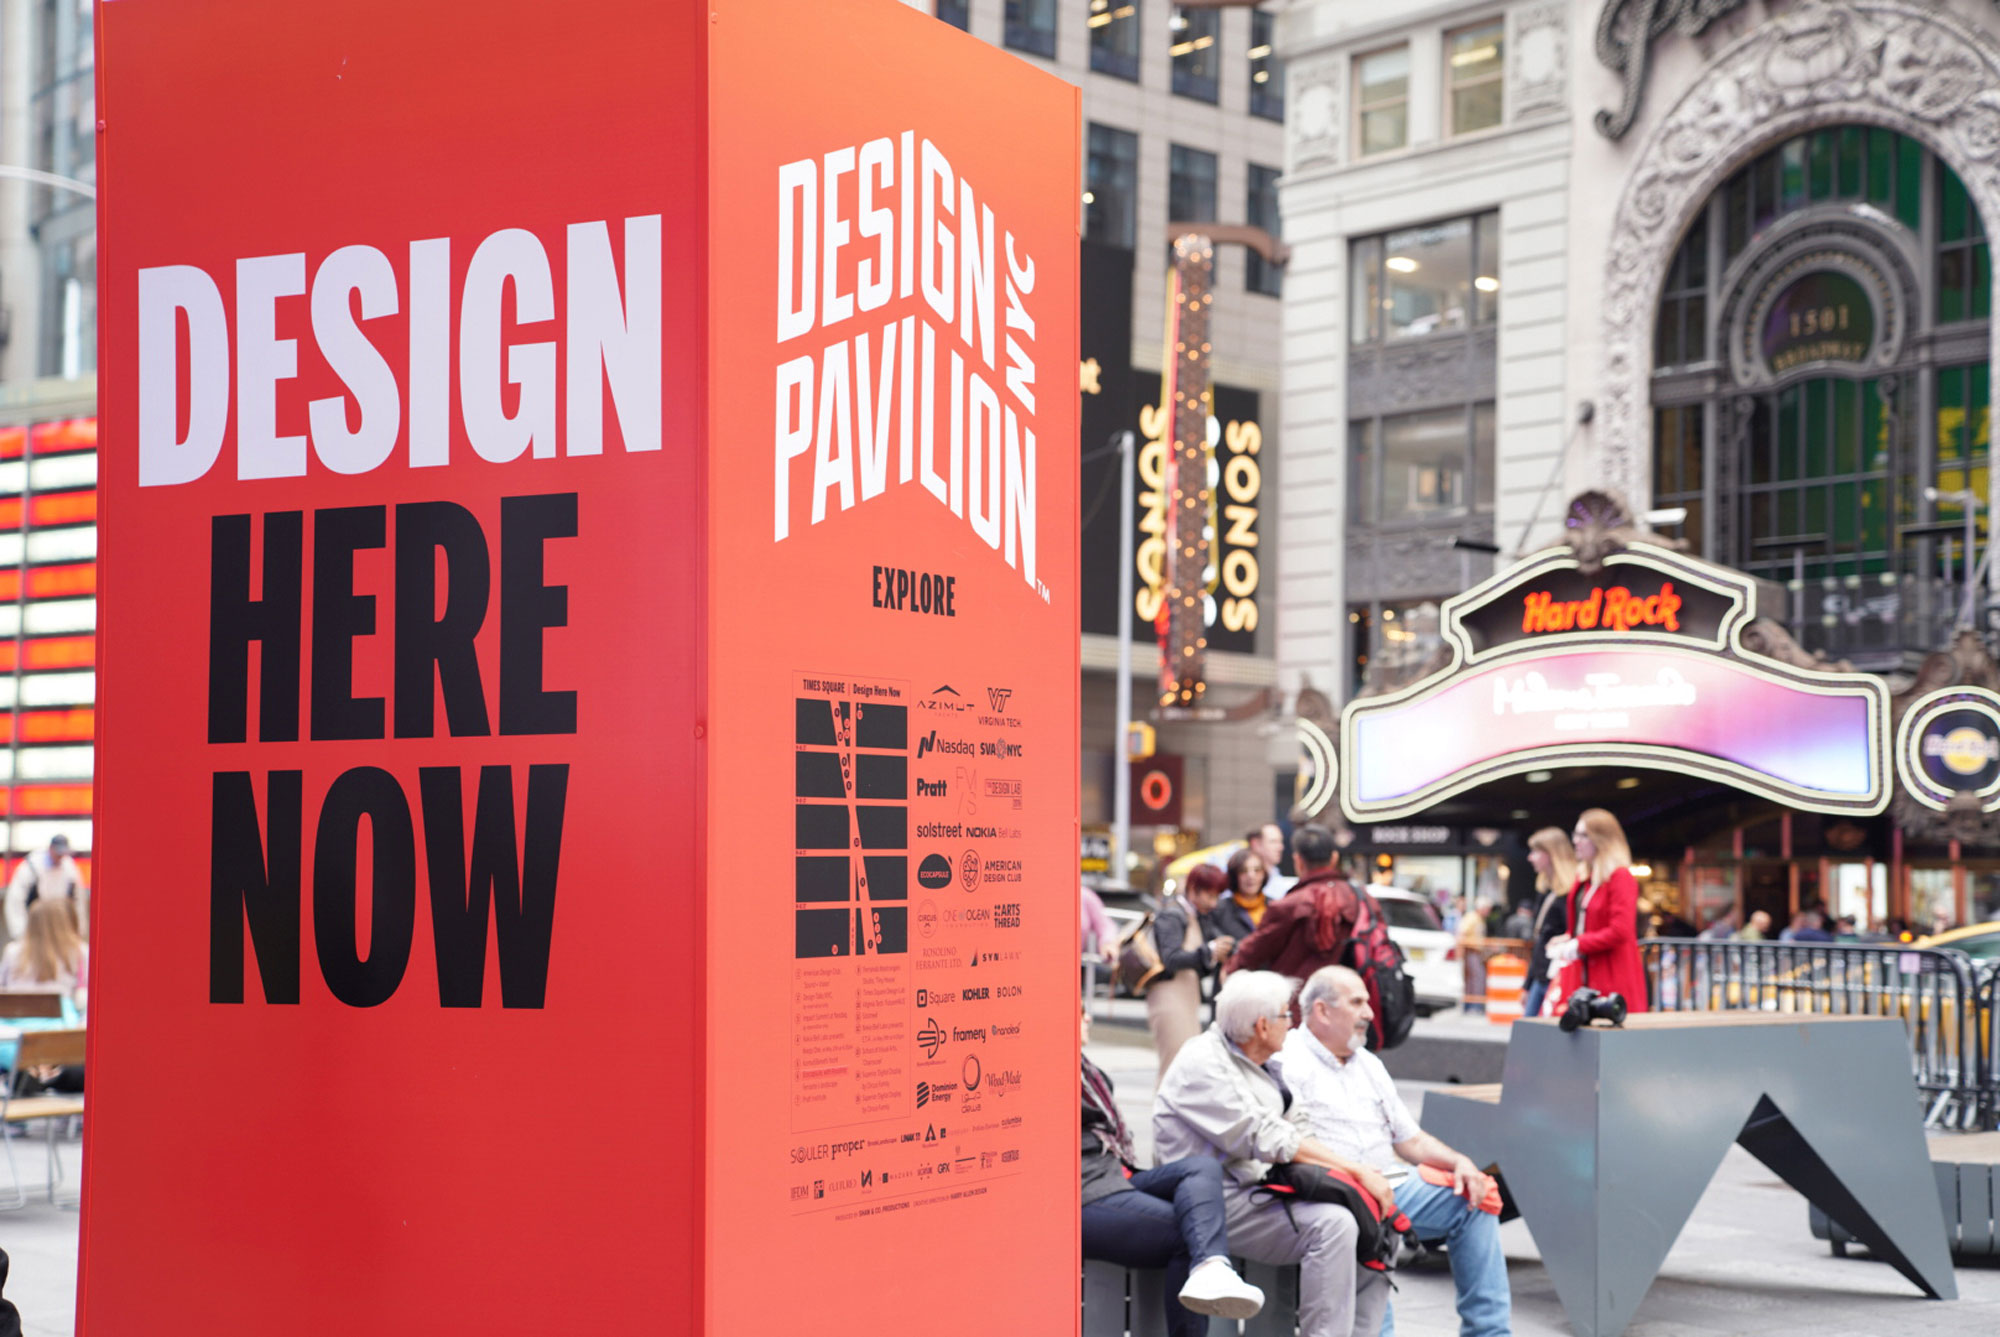 Design pavilion   design here now